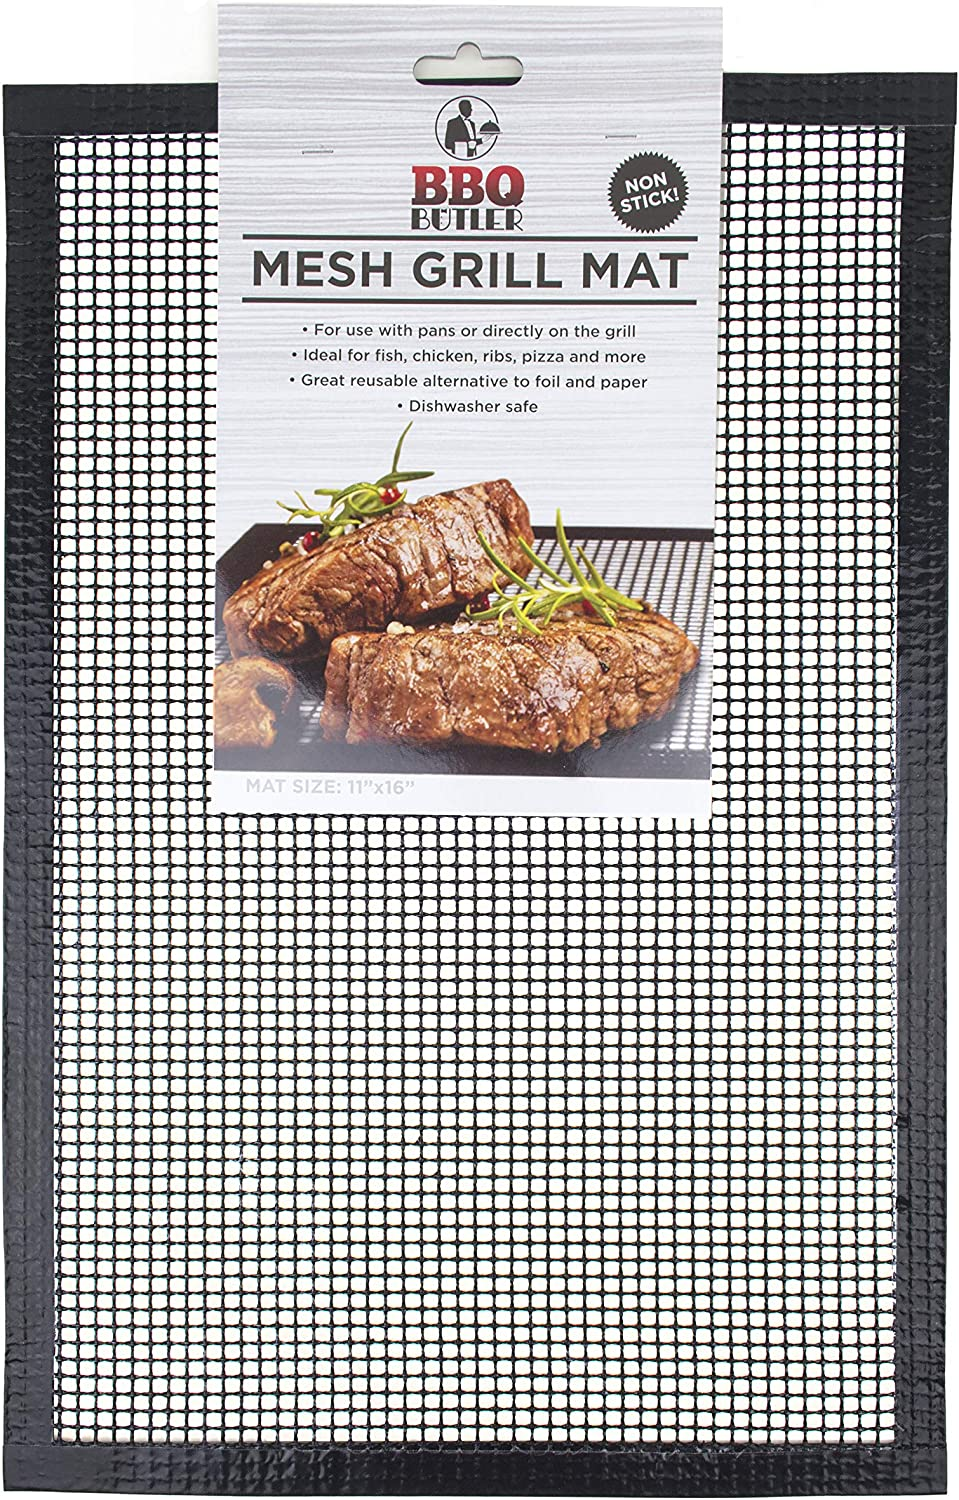 BBQ Butler Grill Mat - Mesh Non-Stick Grill Mat - Perfect For Smokers - Traeger, Green Egg, Kamodo Compatible - 2 Mats